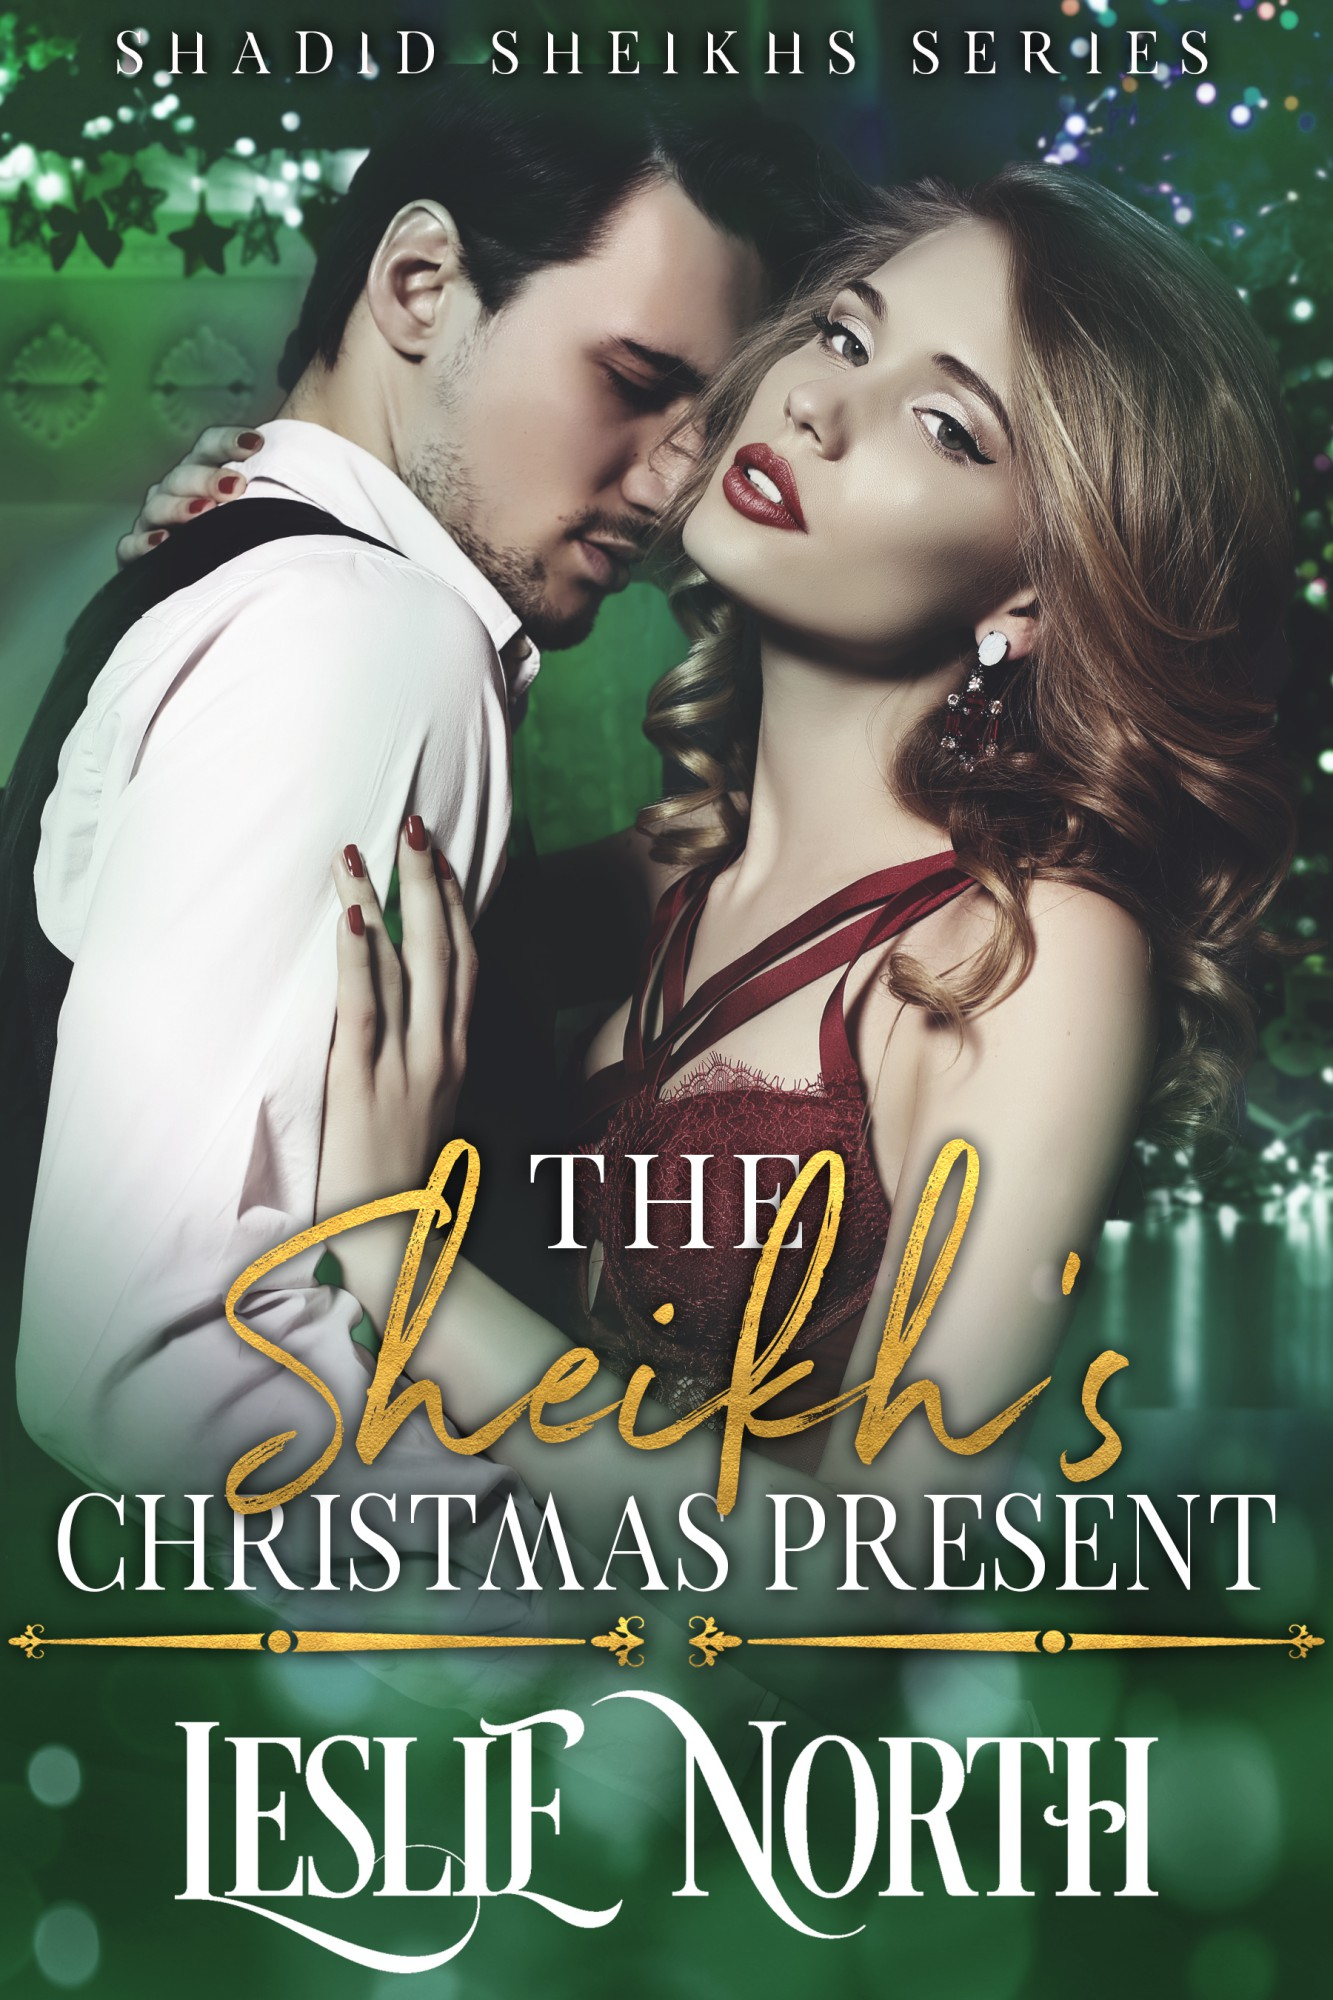 The Sheikh's Christmas Present (Shadid Sheikhs #2)